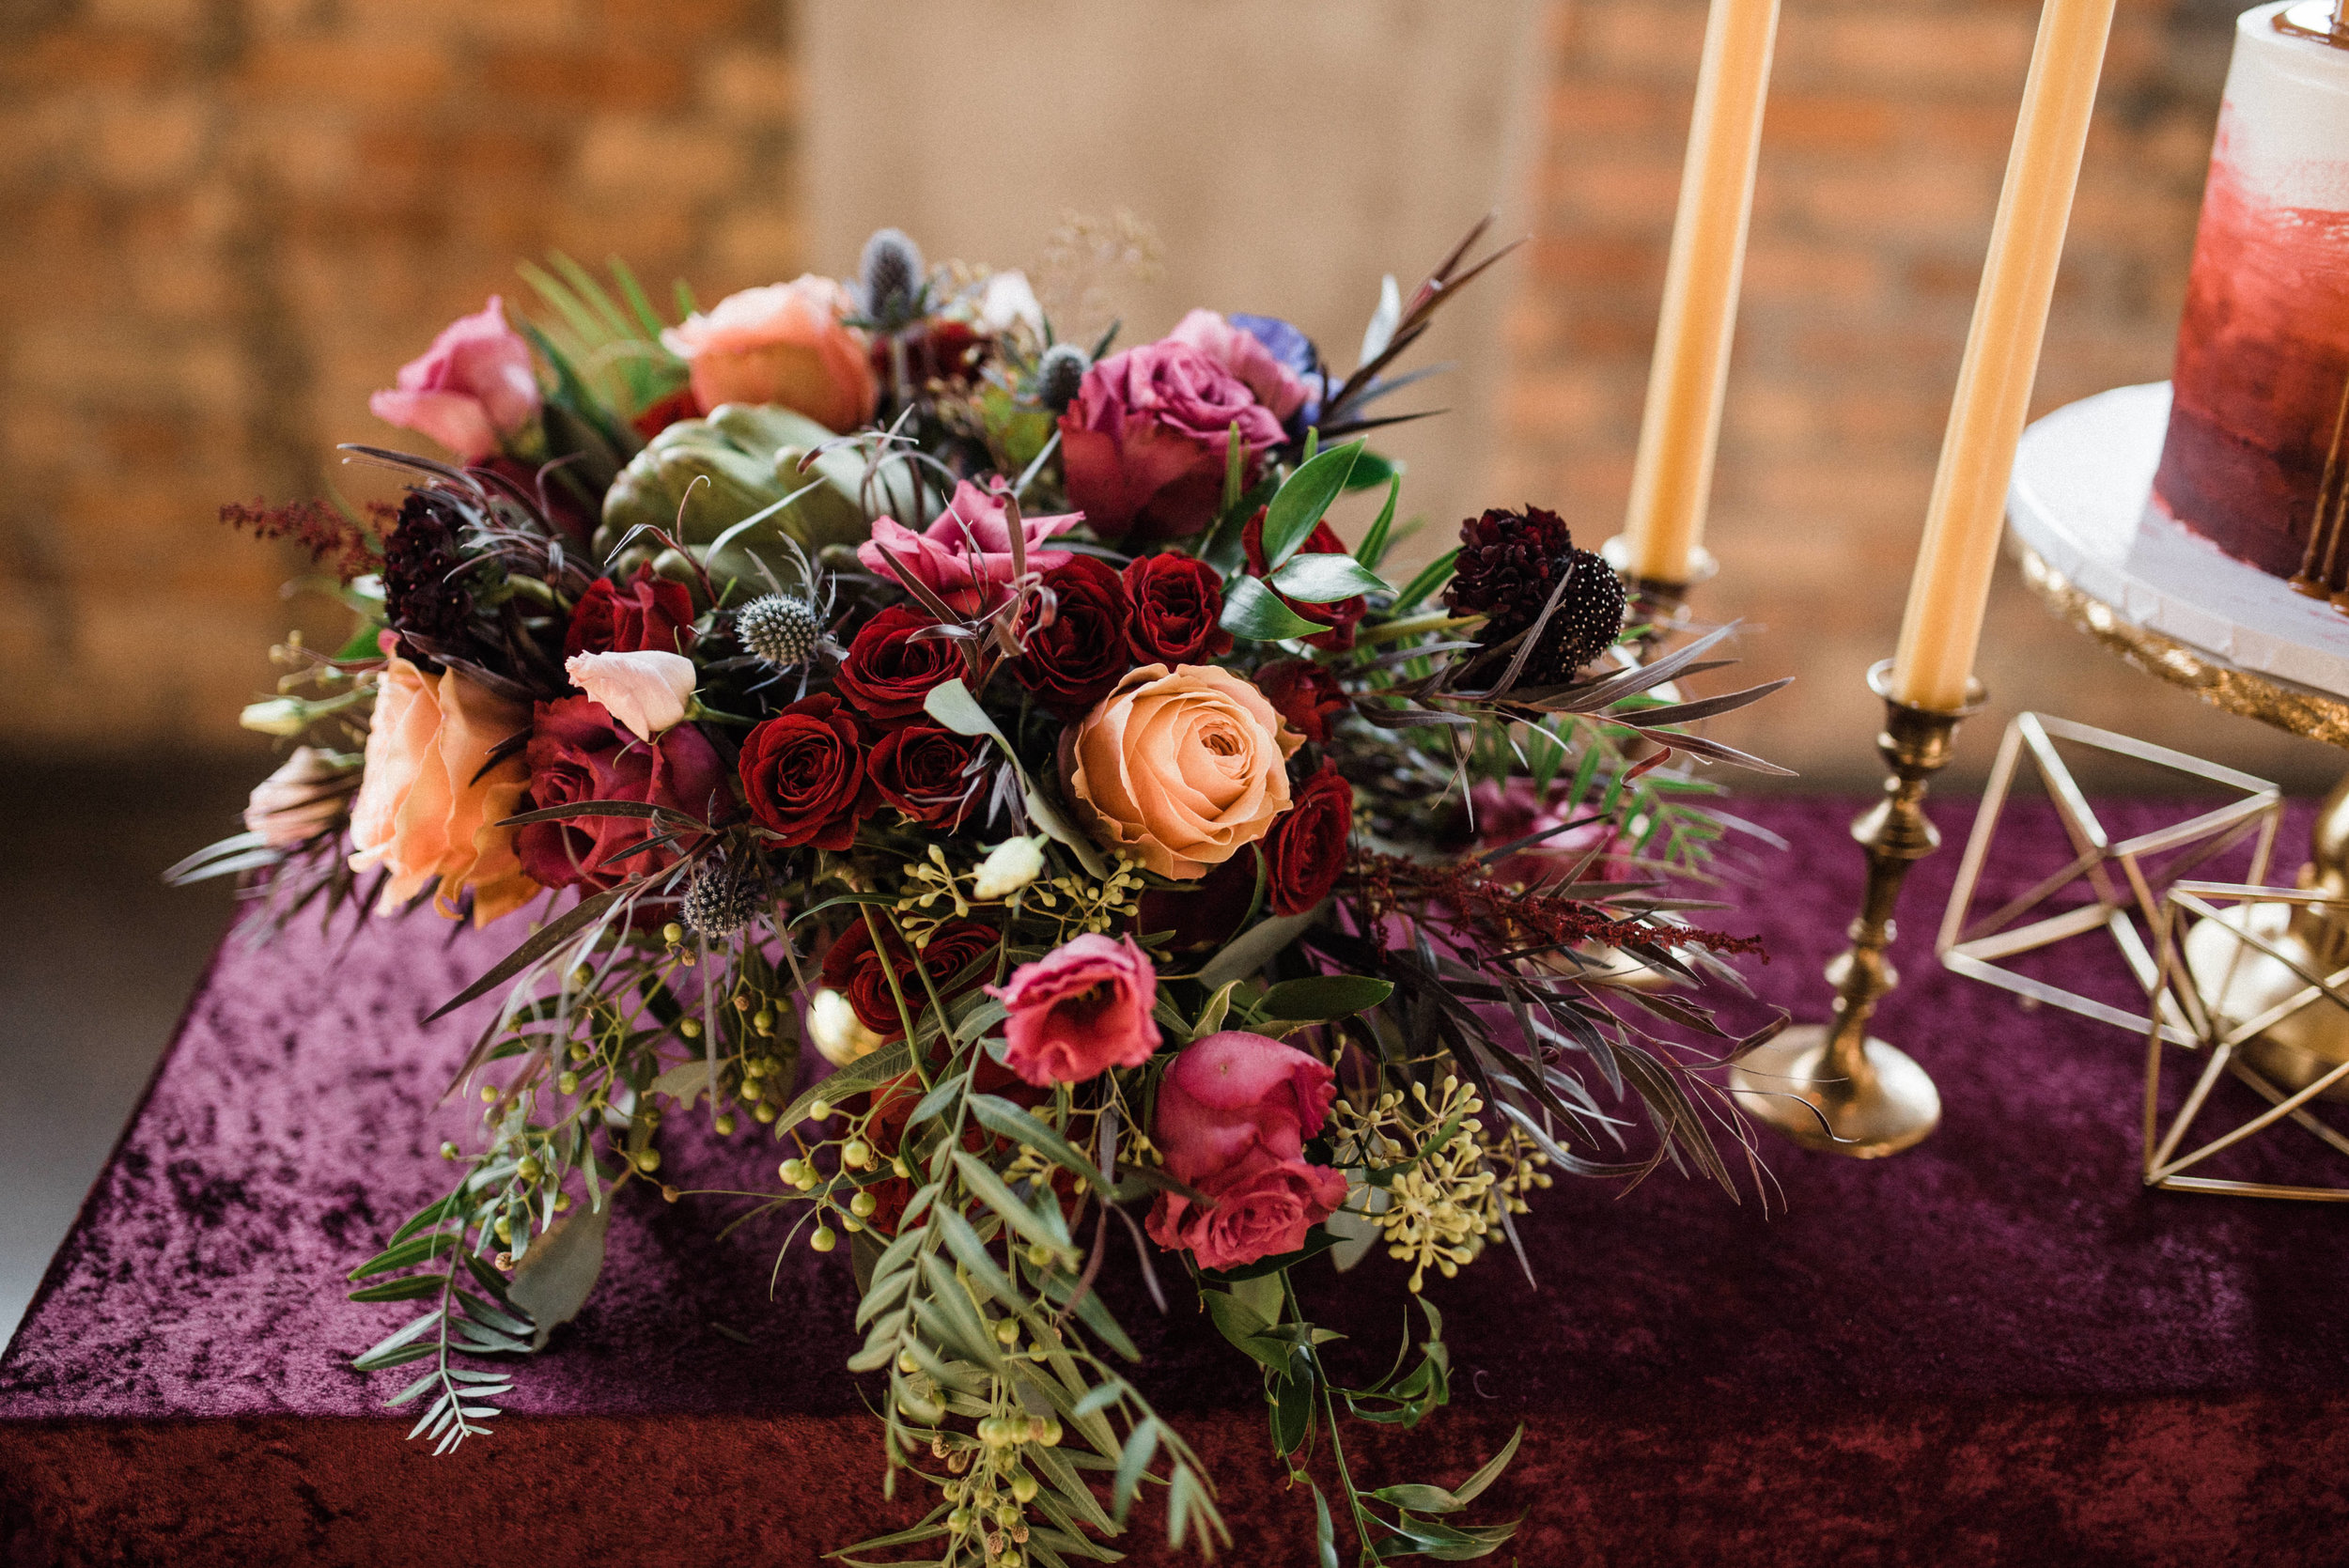 Flower arrangements by The Flower Man, decor from Something Old Dayton, planned and styled by Perry Rose Media, and photographed by Chelsea Hall.